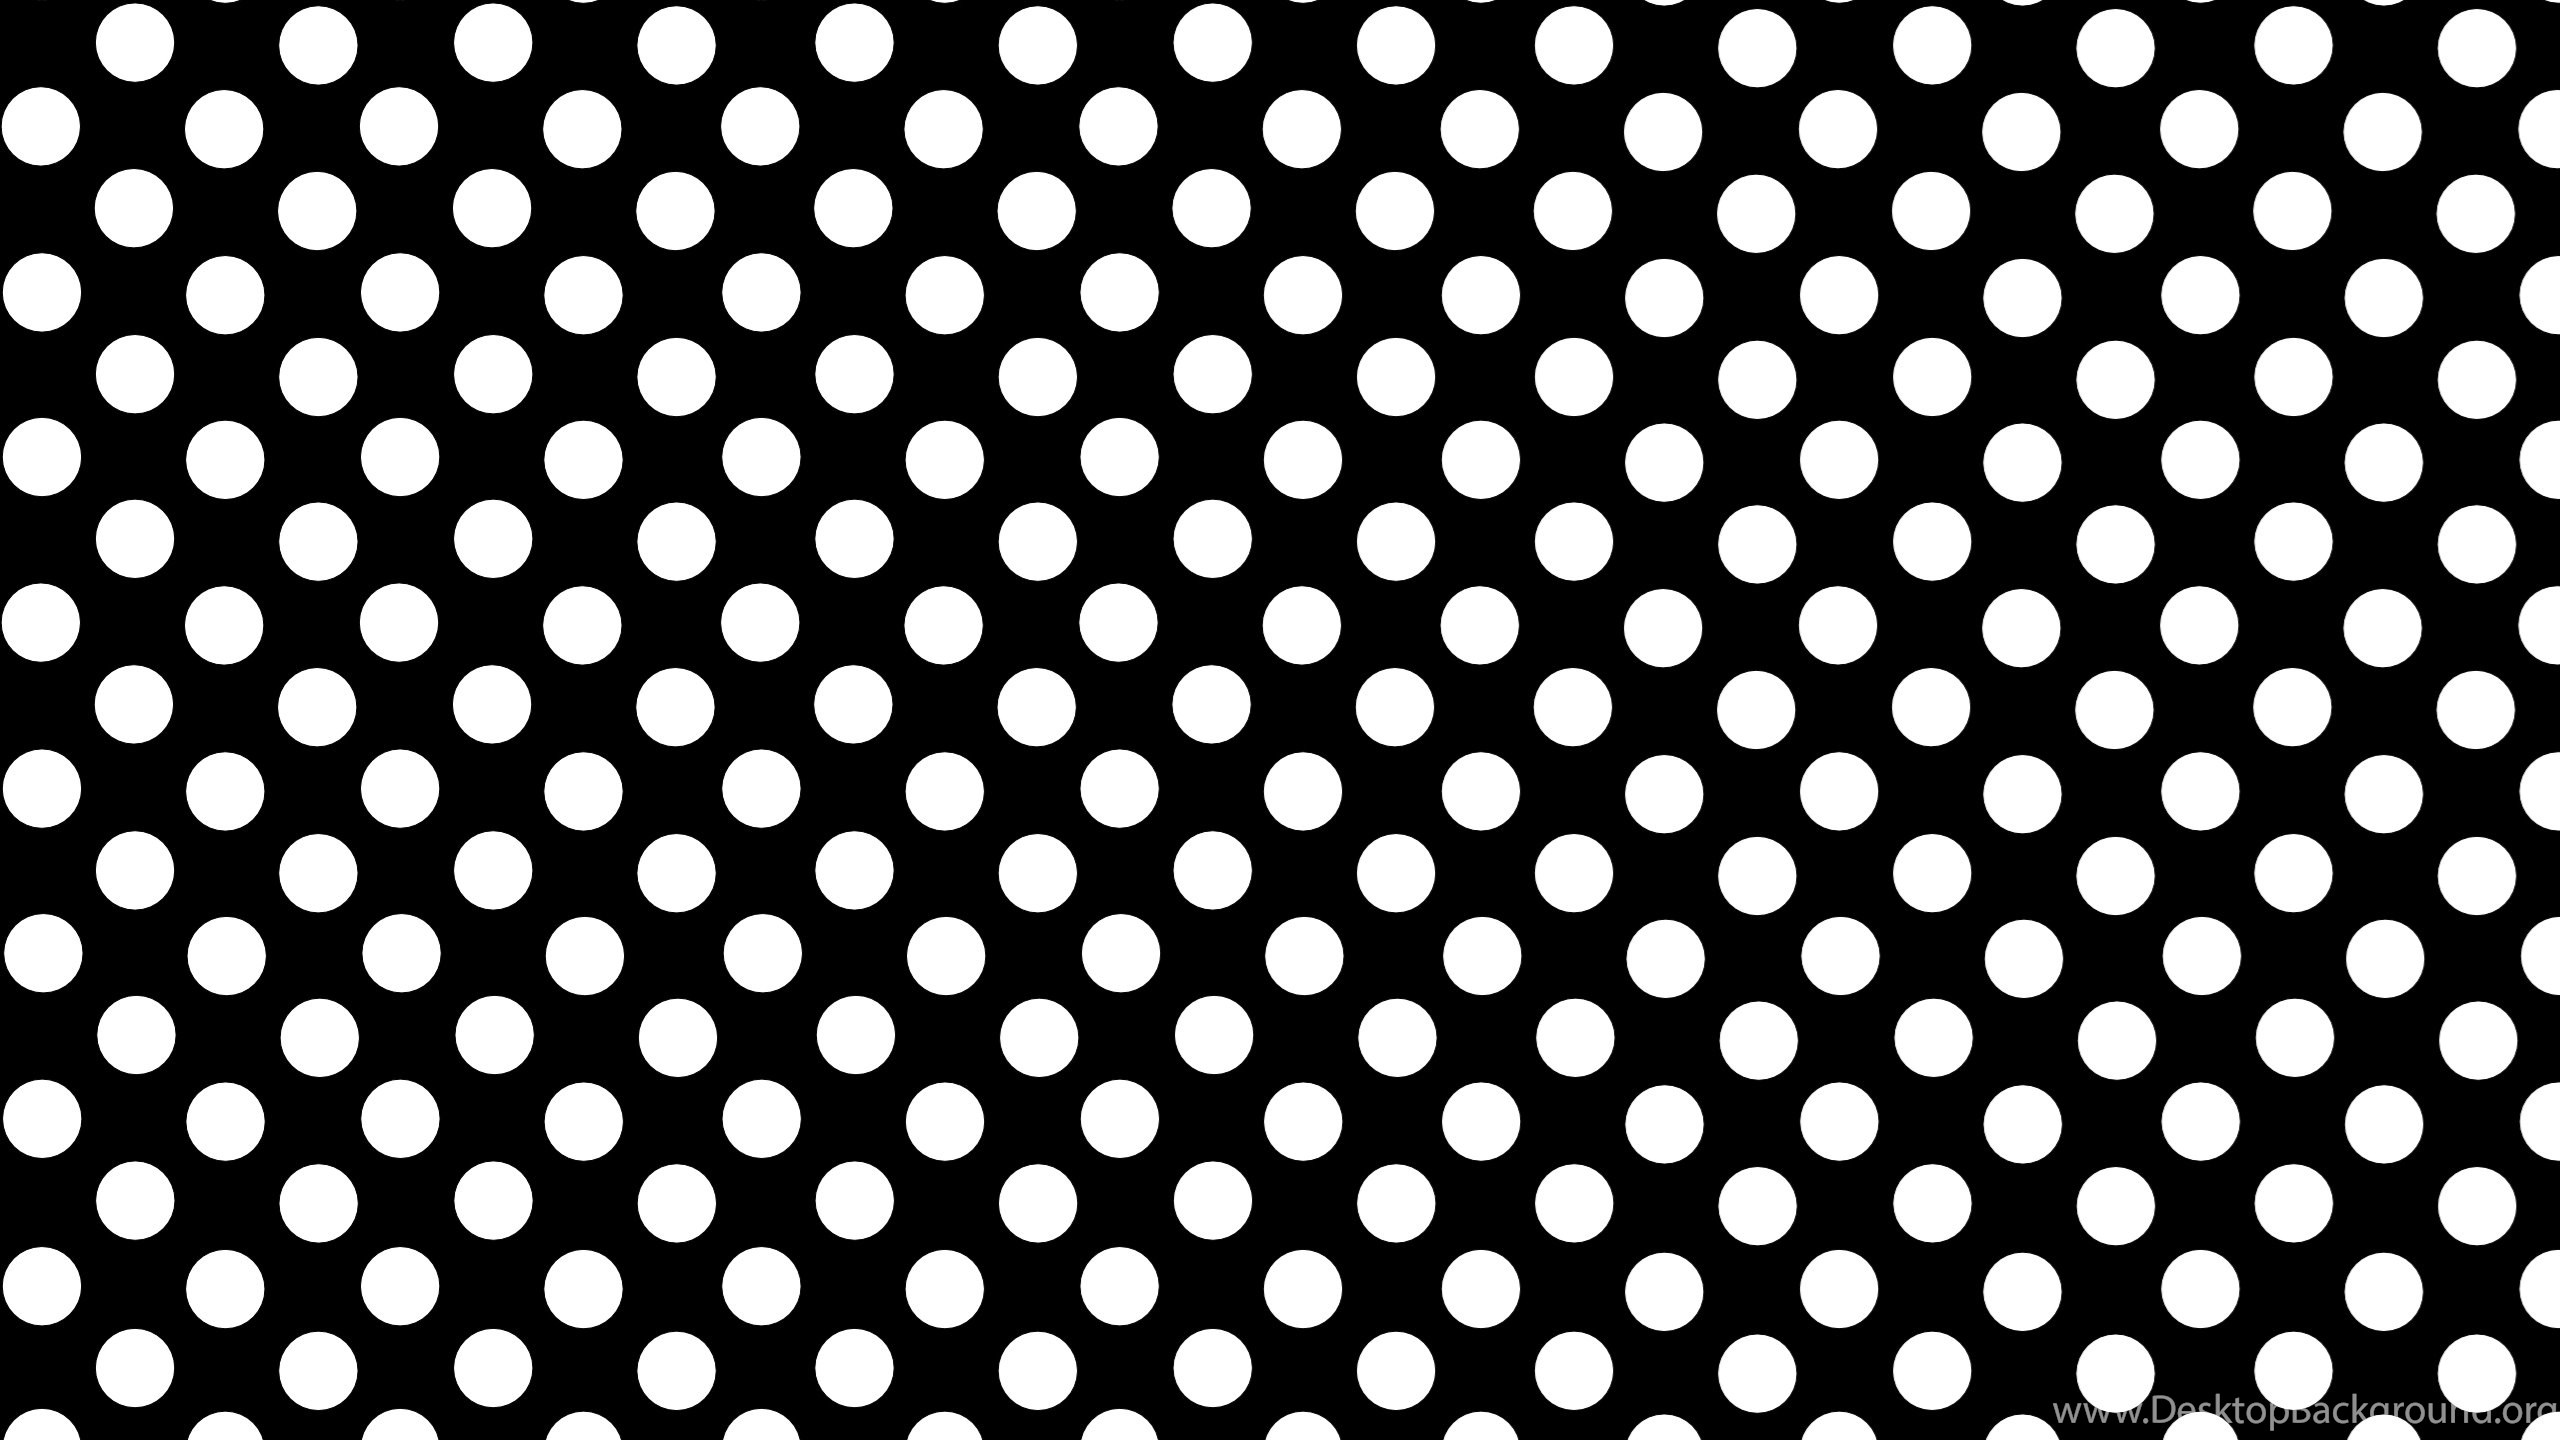 polka dot wallpapers border best hd wallpaper dots